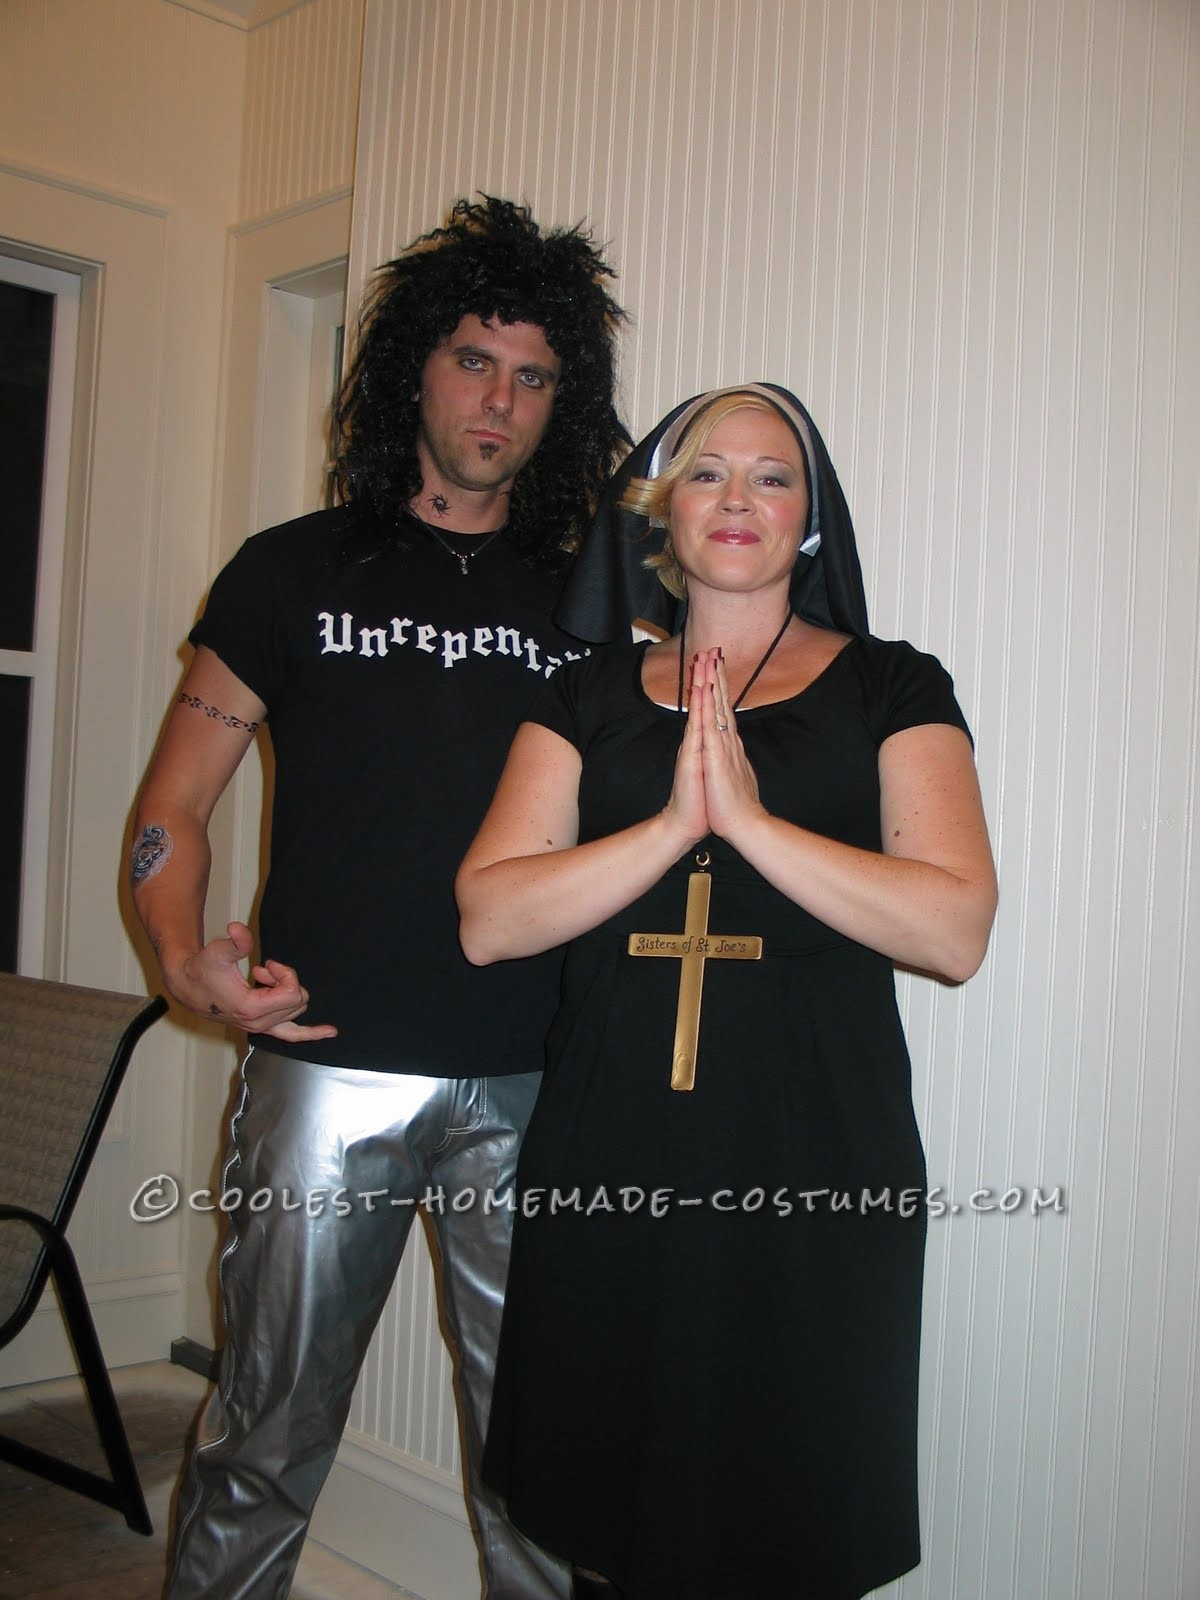 Homemade Couple Costume Idea: The Nun and the Rebel